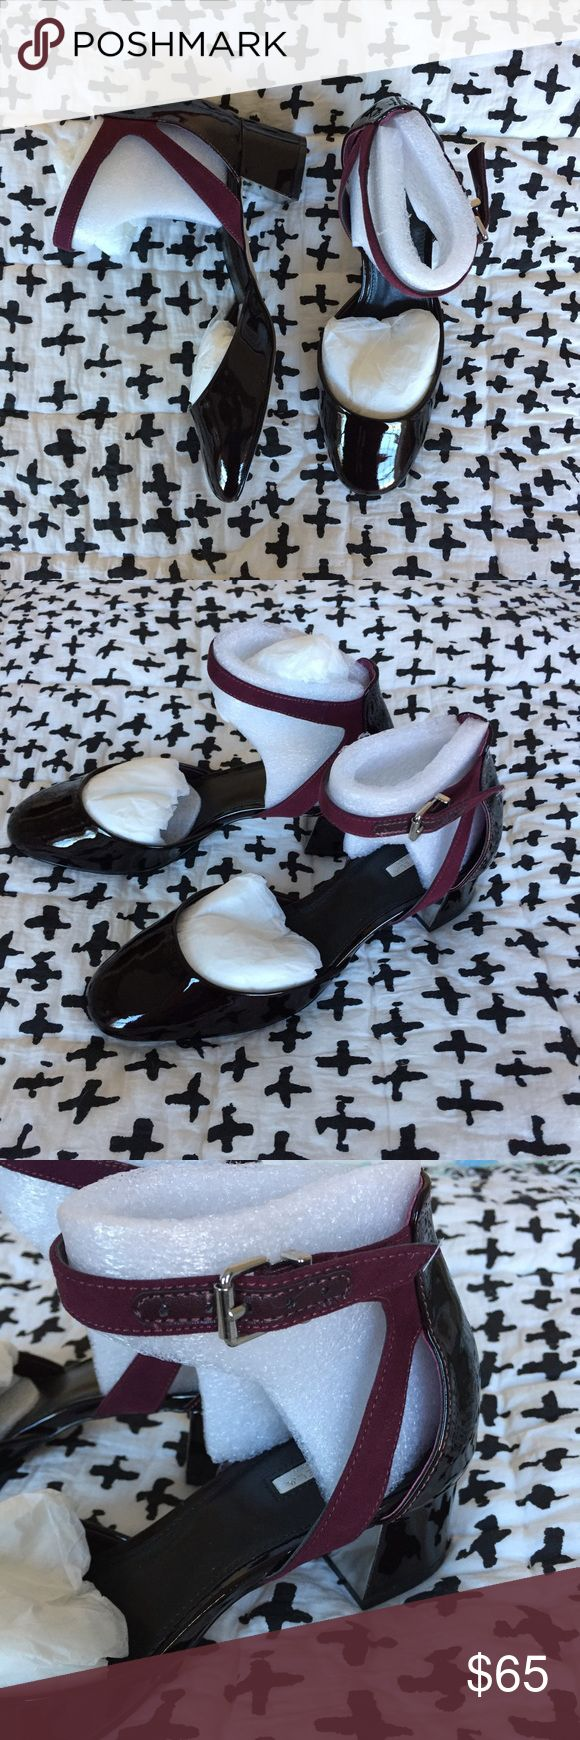 NIB Kurt Geiger Carvela Wine Strap Heels Sz 39 Beautiful mid- height heels in burgundy wine patent leather and suede. Ankle strap is adjustable.  Brand new, in box, never worn. Slightly too big on me (I usually wear US 8). ASOS Shoes Heels